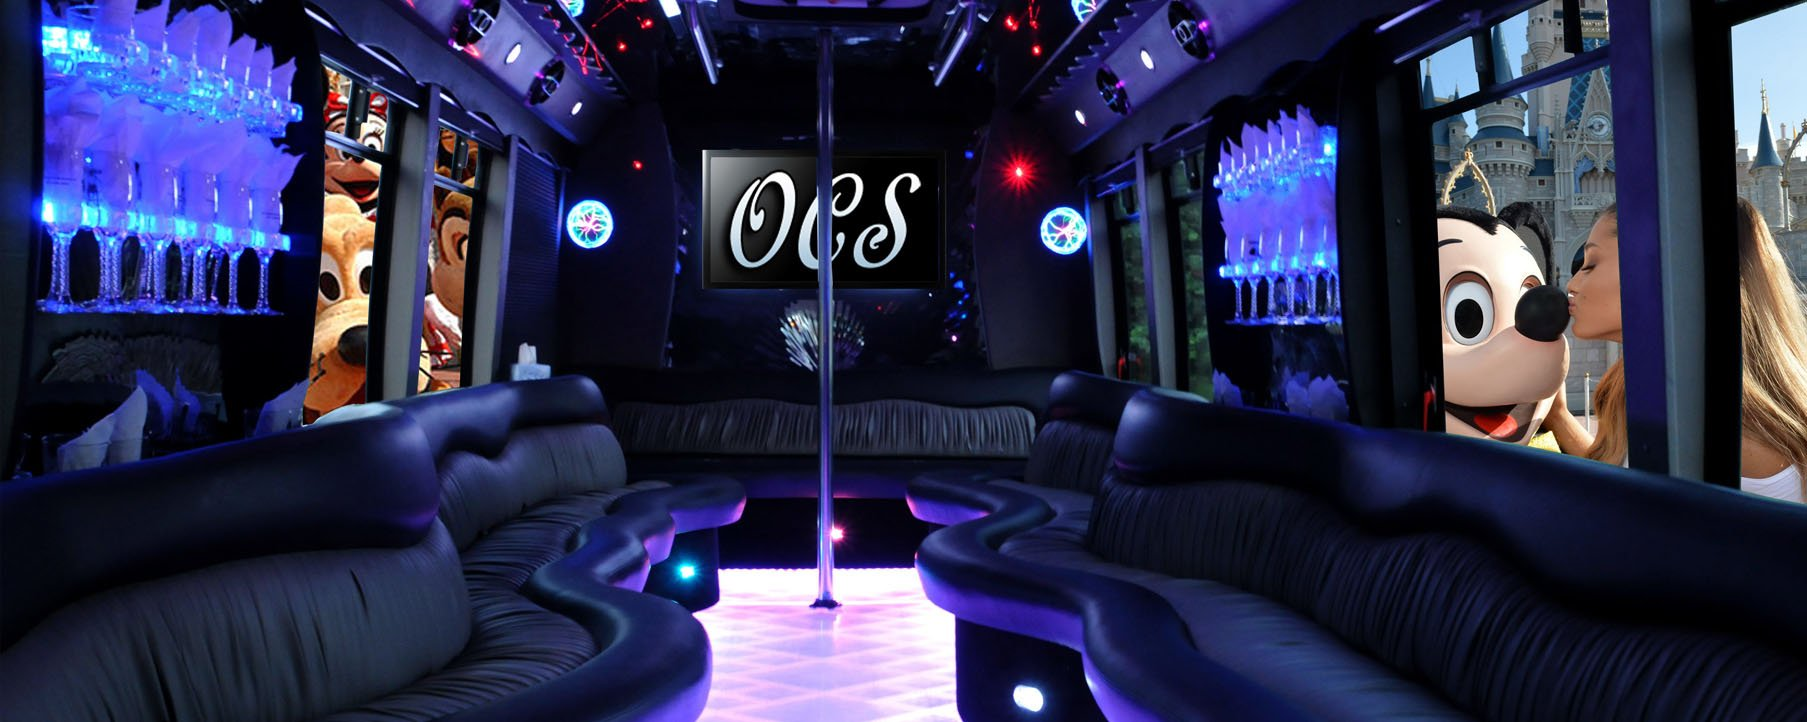 Our Limo Rentals are Perfect! <br>  Reserve Orlando's best limo service!